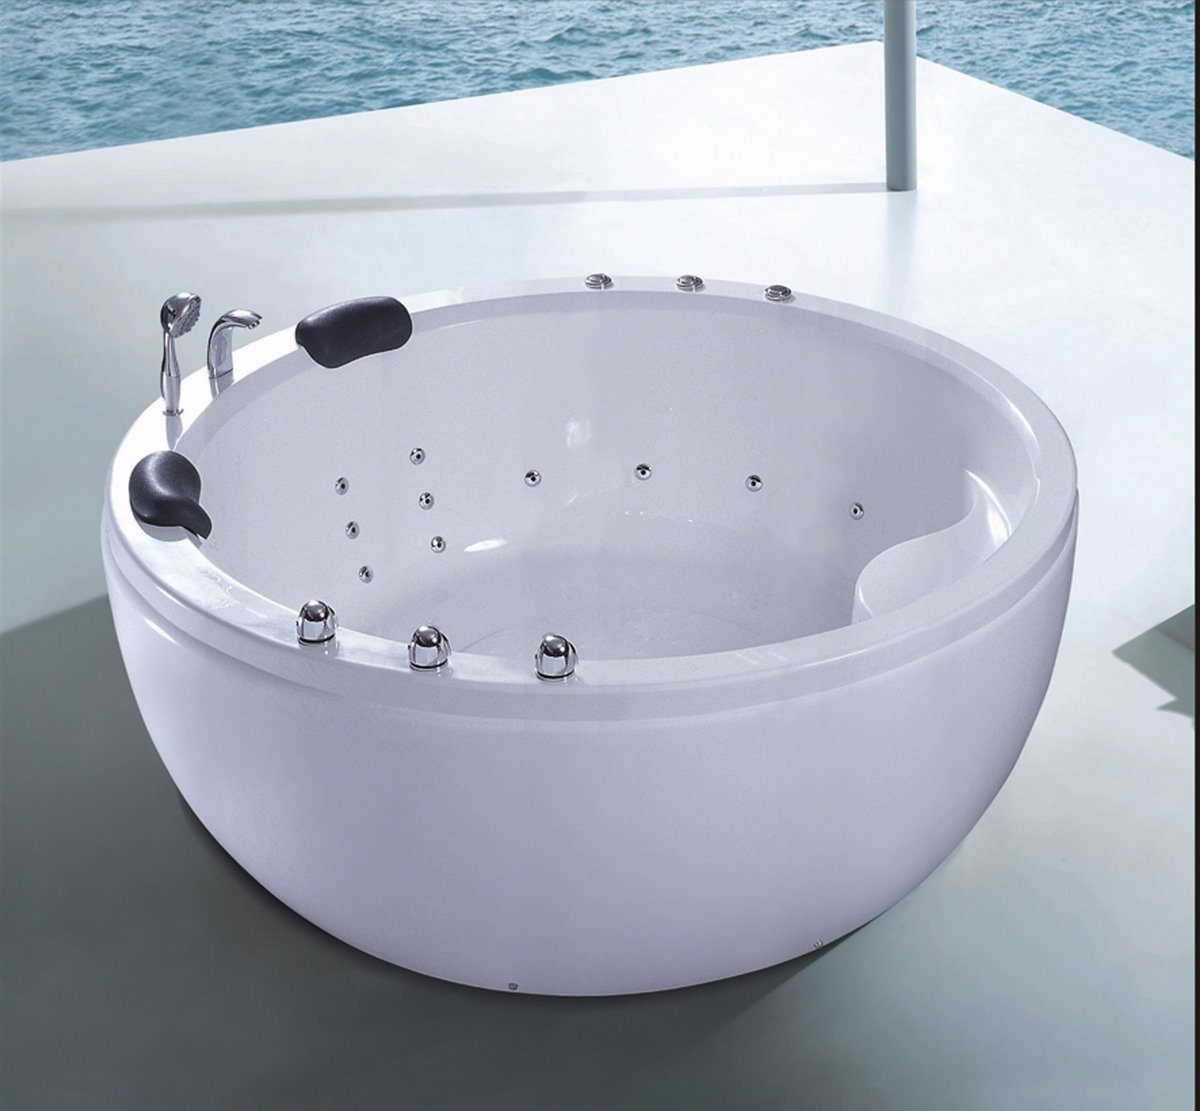 China 1800mm Round Free Standing Jacuzzi SPA 6 People with Ce RoHS ...